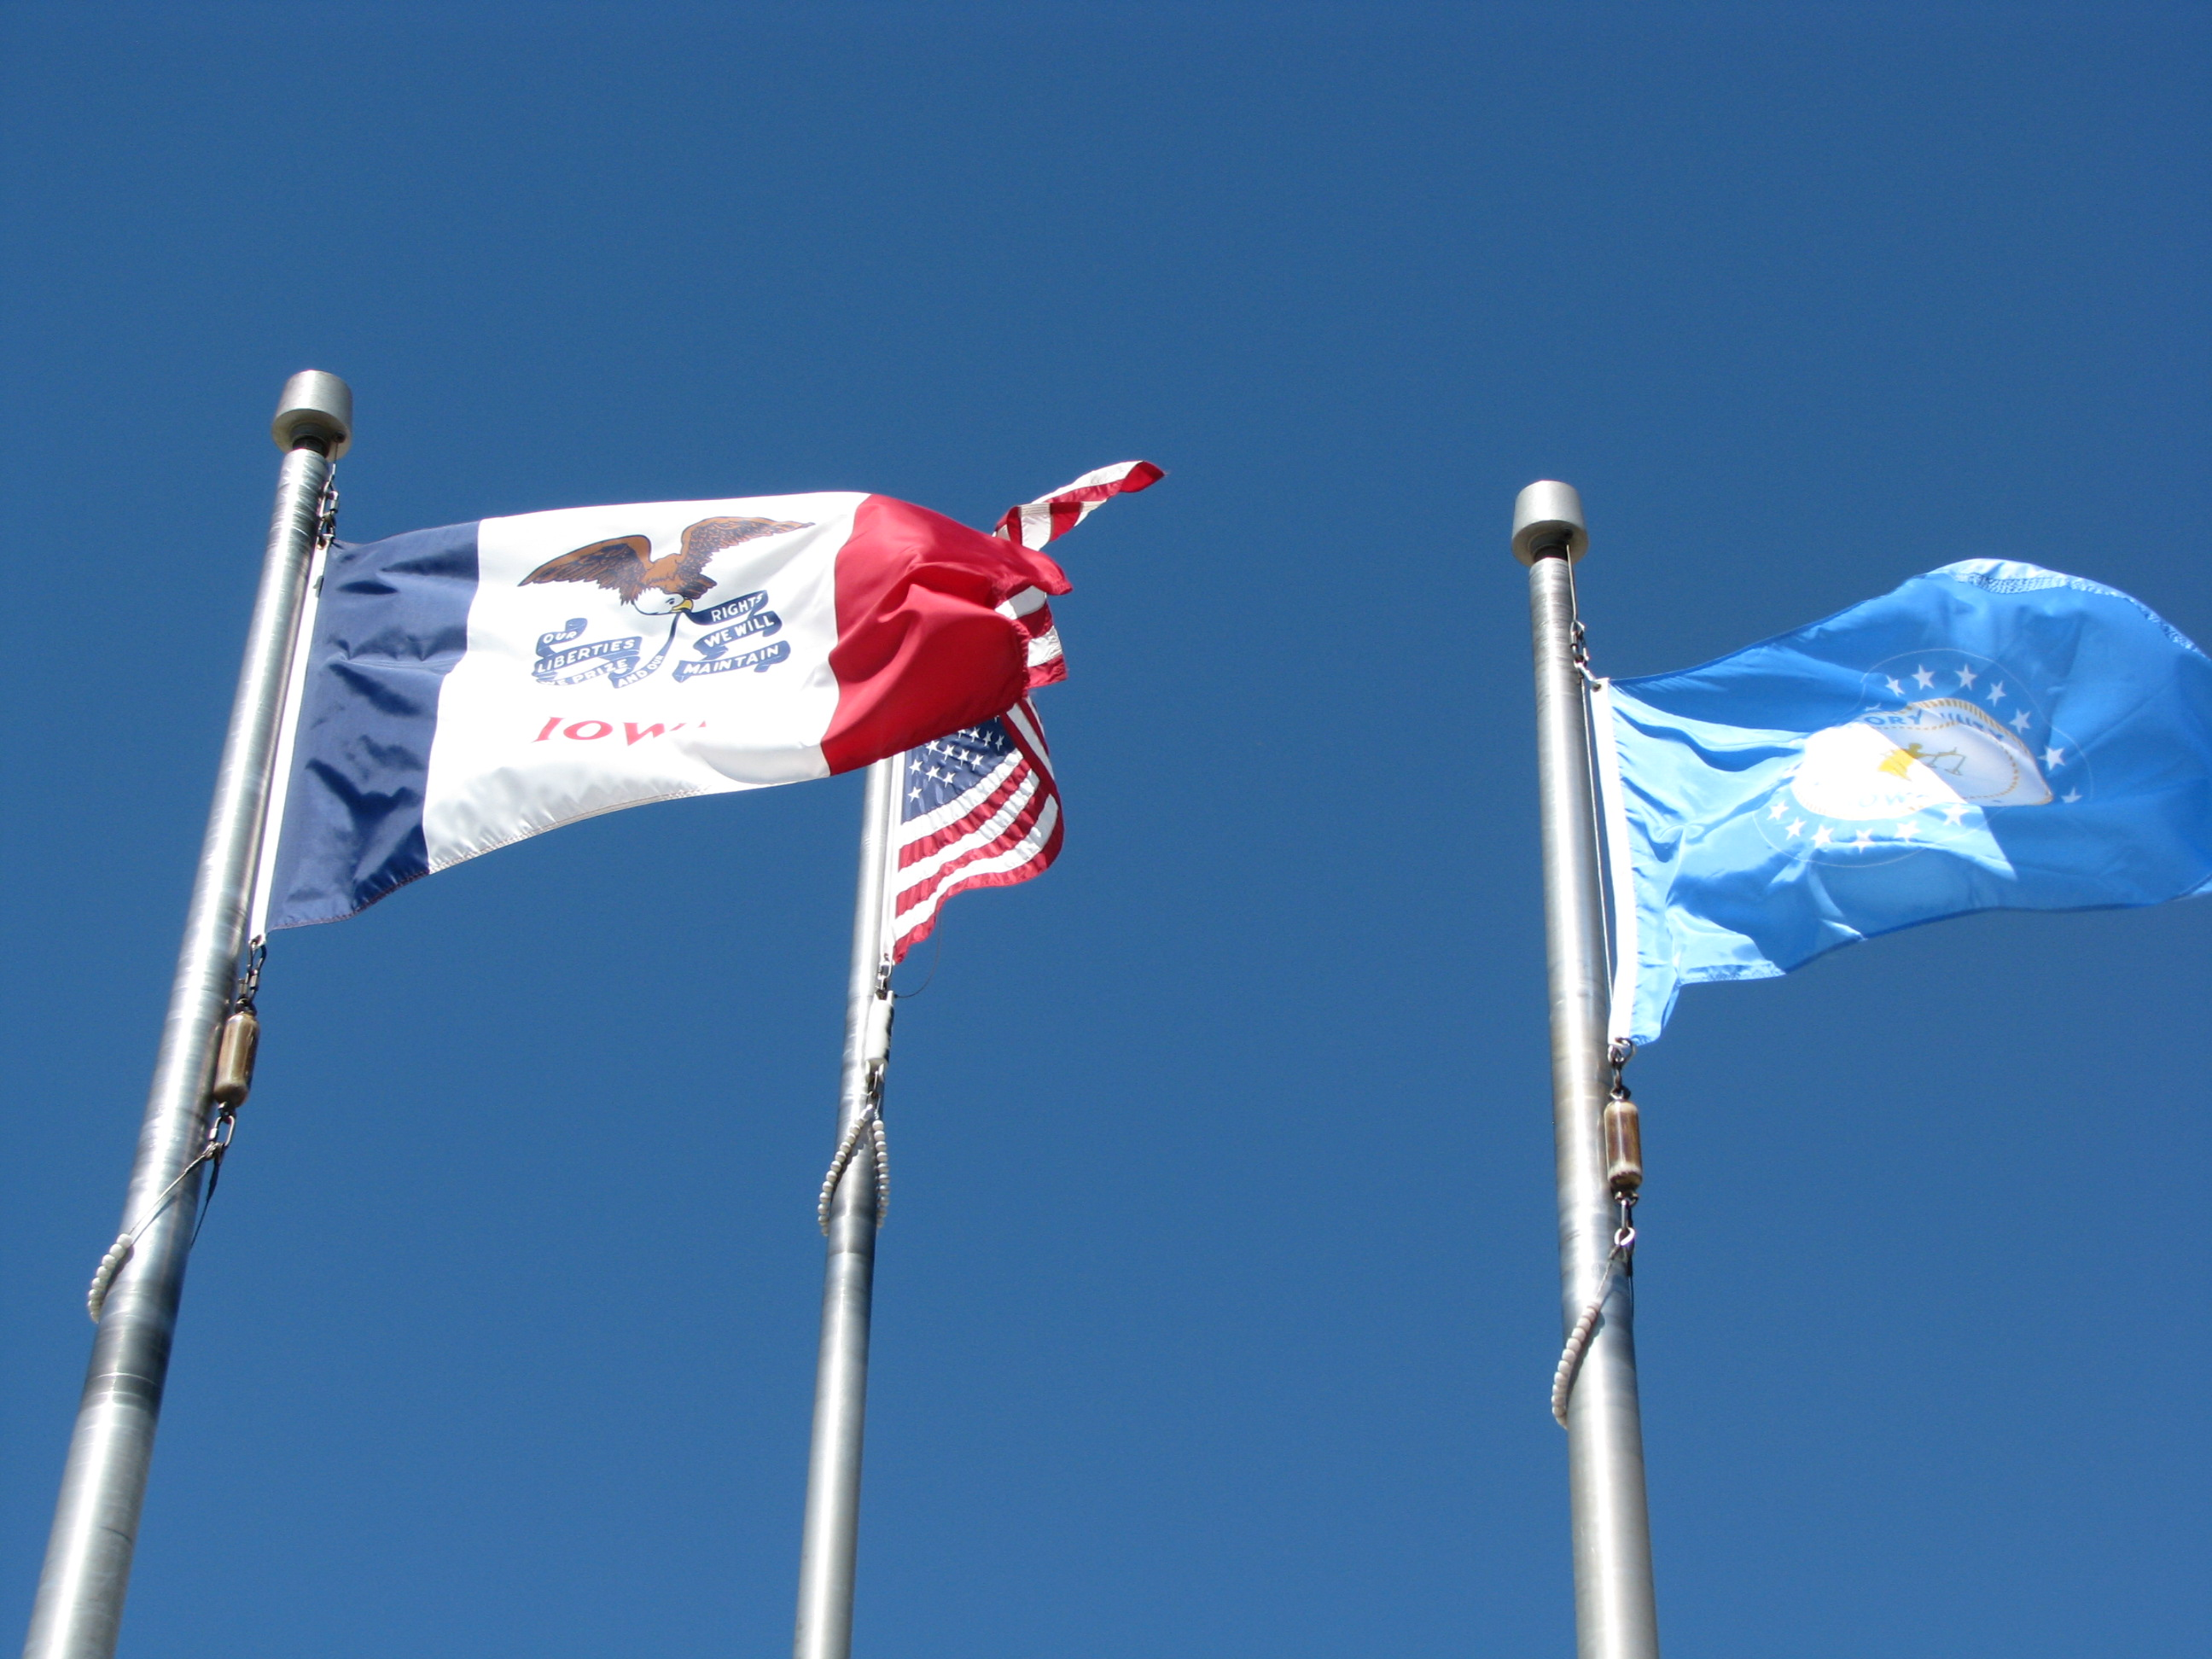 Flags of Story County